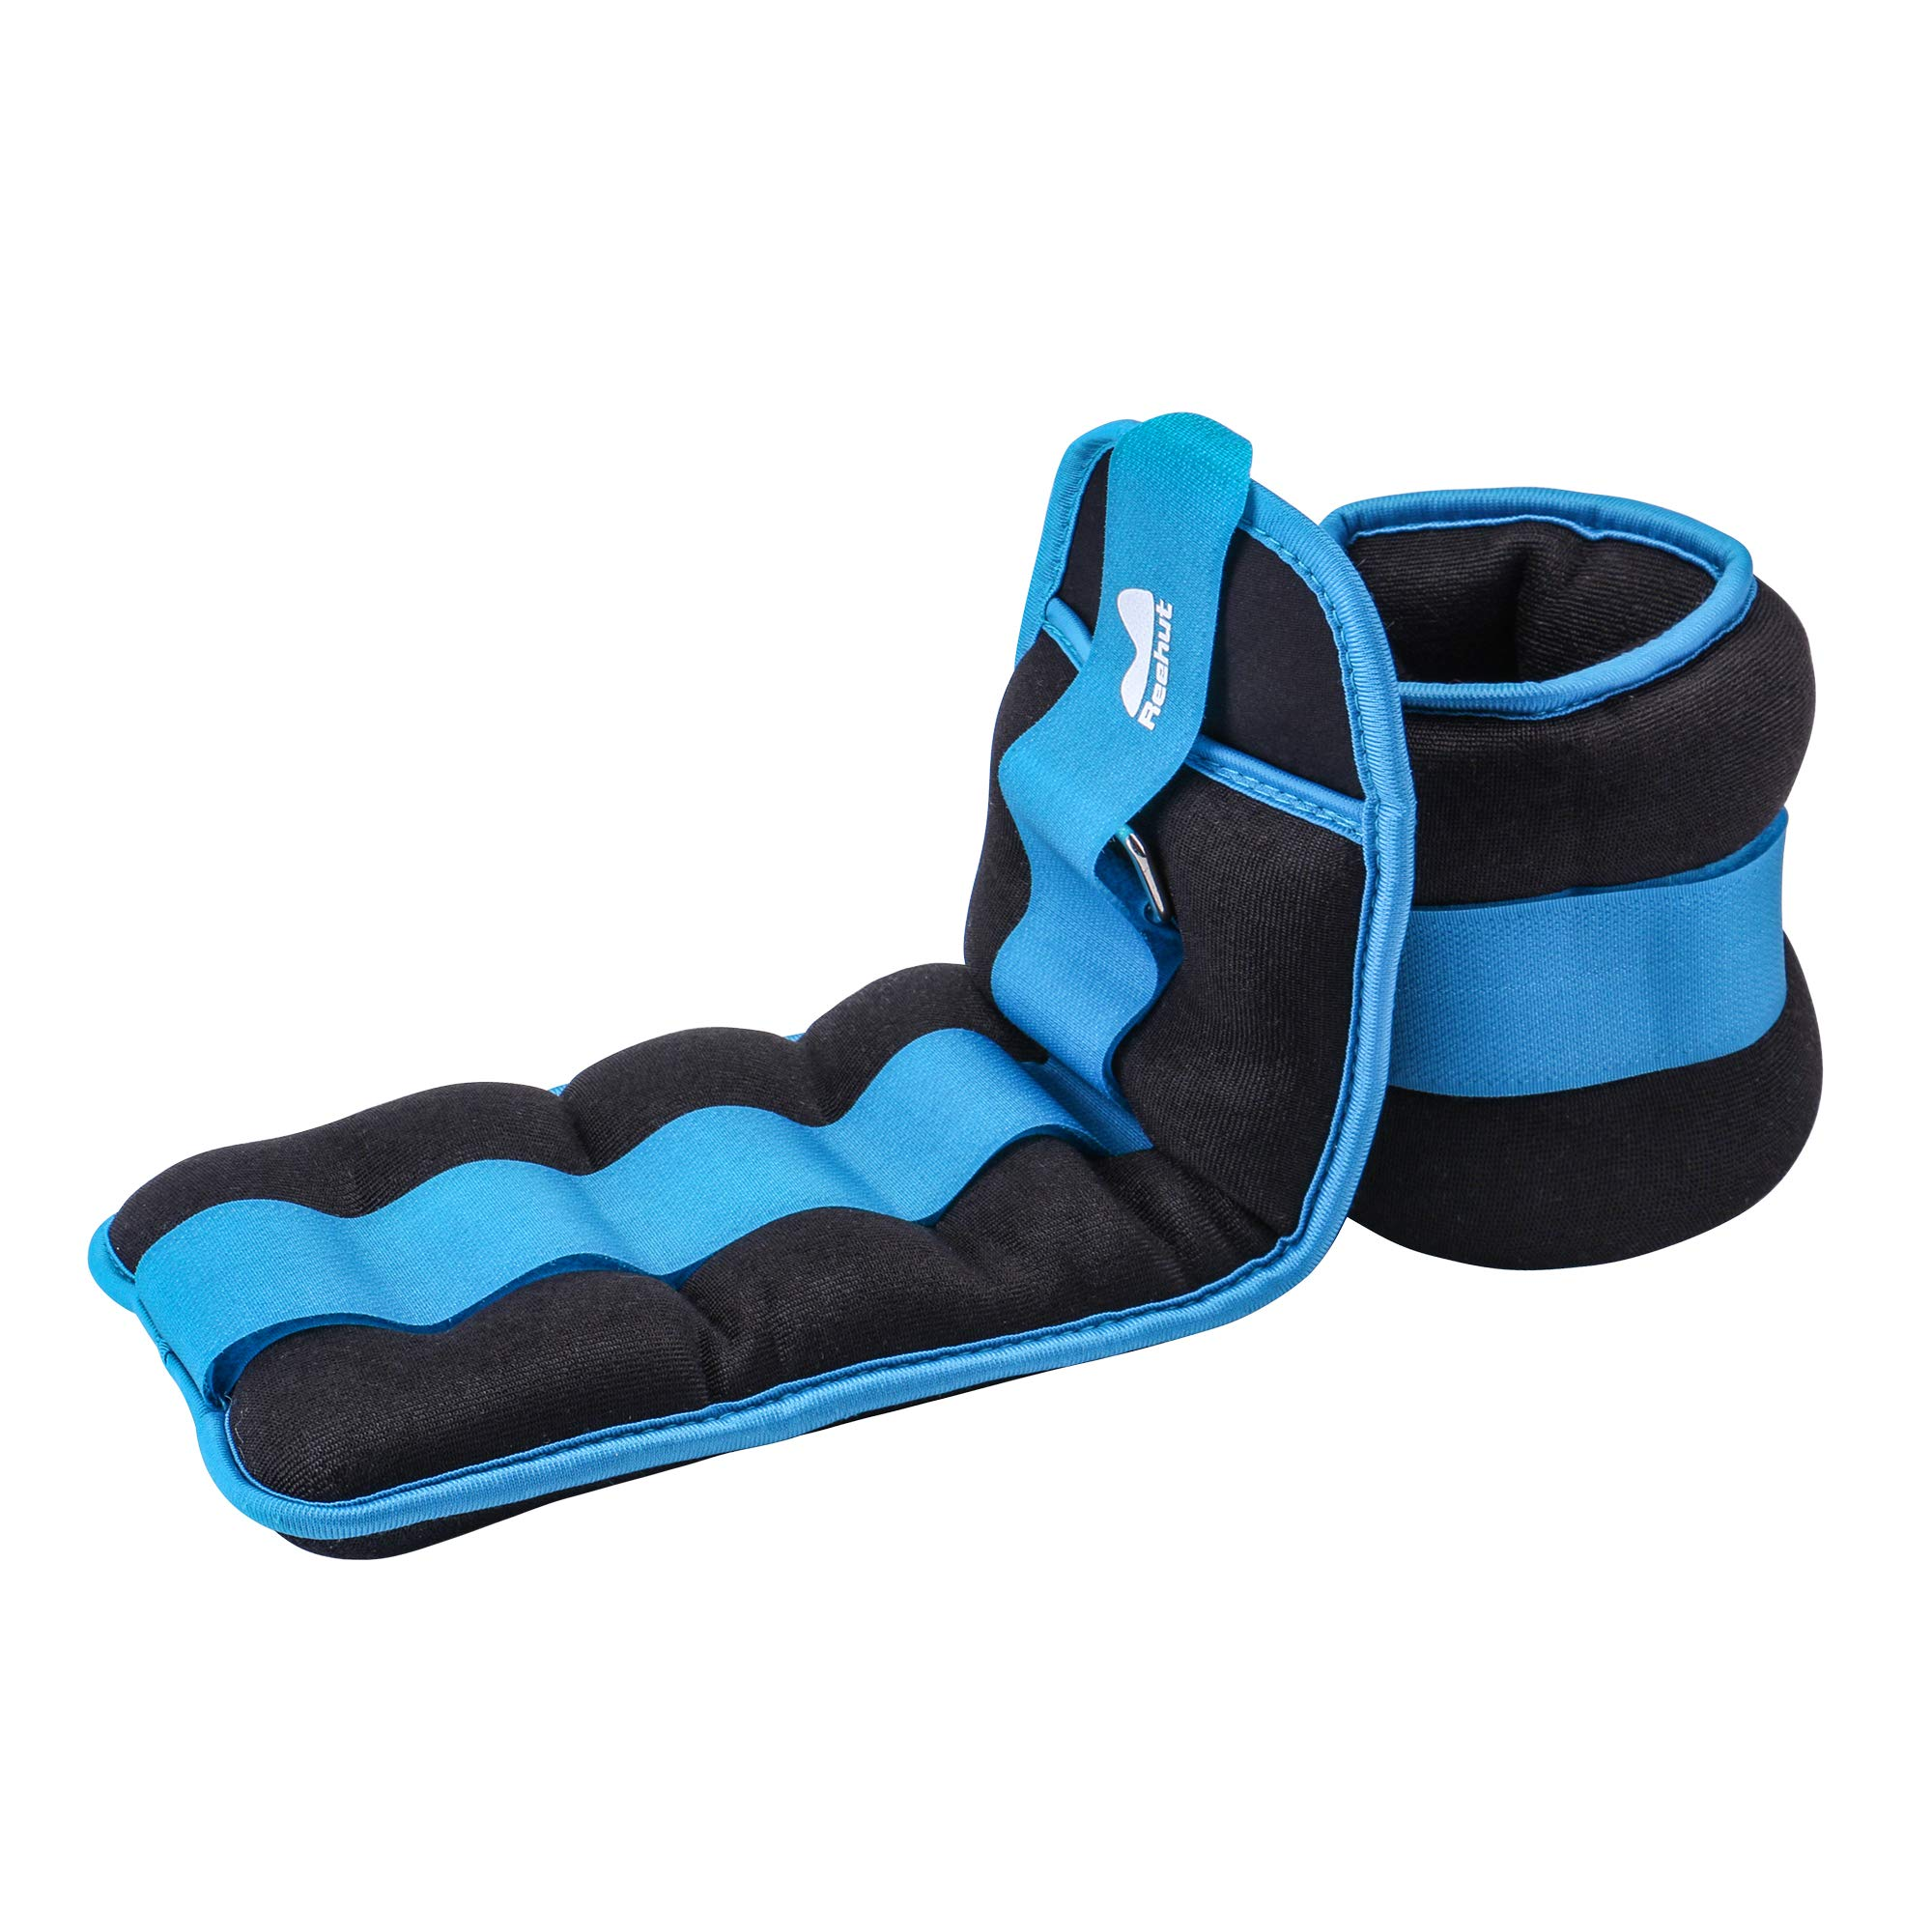 REEHUT Ankle Weights, Durable Wrist Weight (1 Pair) w/Adjustable Strap for Fitness, Exercise, Walking, Jogging, Gymnastics, Aerobics, Gym - Sky Blue -8 lbs Pair (4 lbs Each)